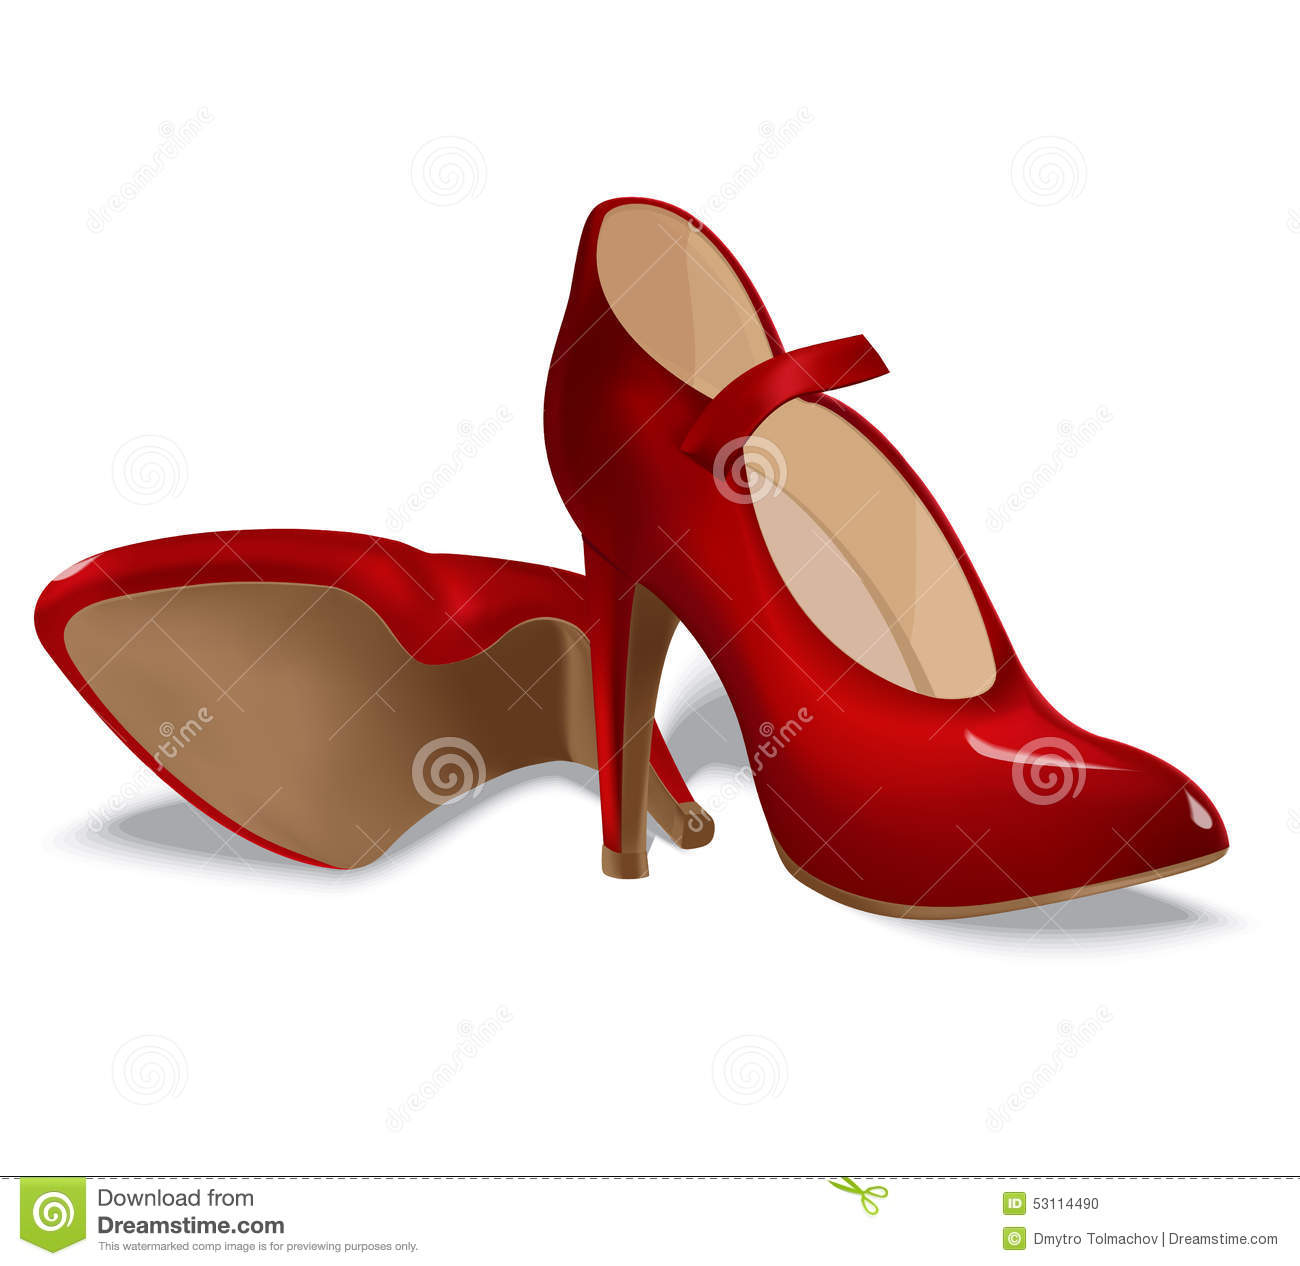 Elegant Red Women Shoes Isolated On White Background Realistic Female Shoes